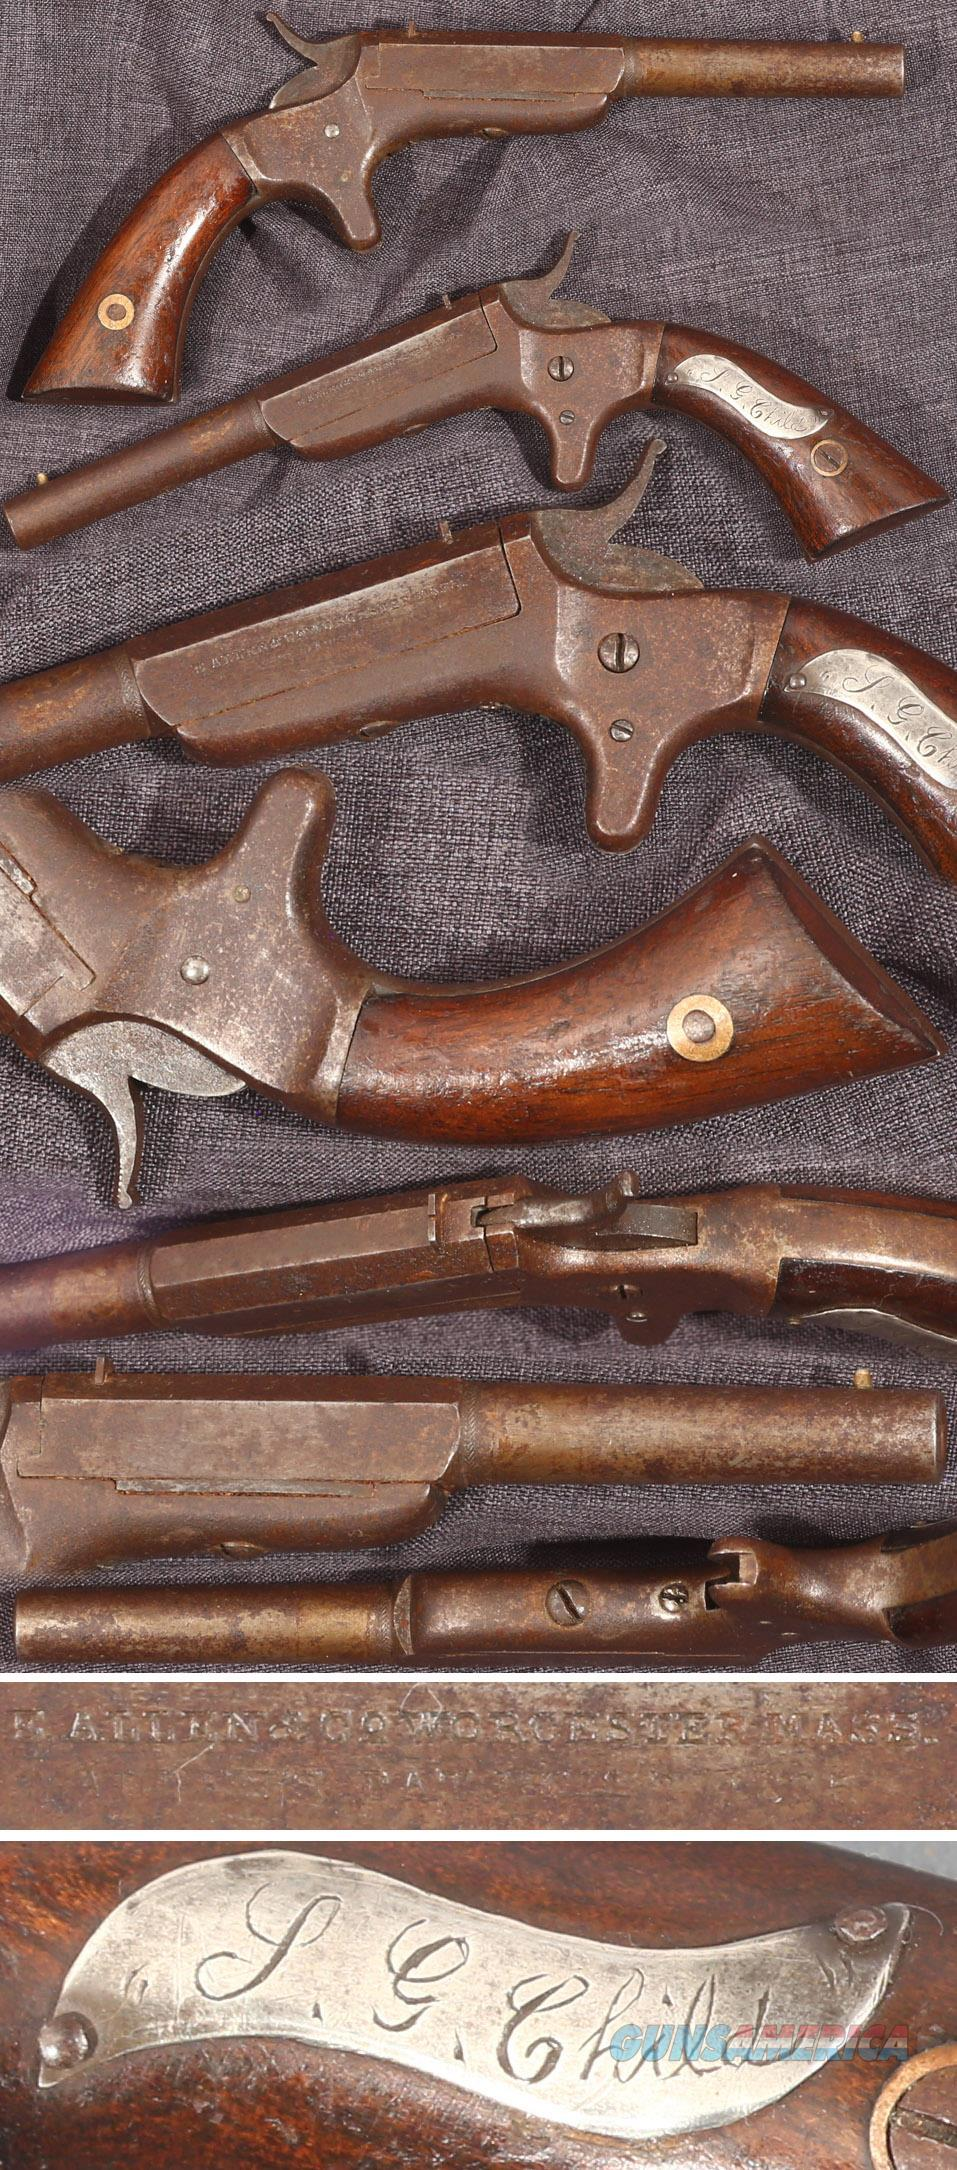 E. Allen & Co single shot 22 derringer  Guns > Pistols > Antique (Pre-1899) Pistols - Ctg. Misc.